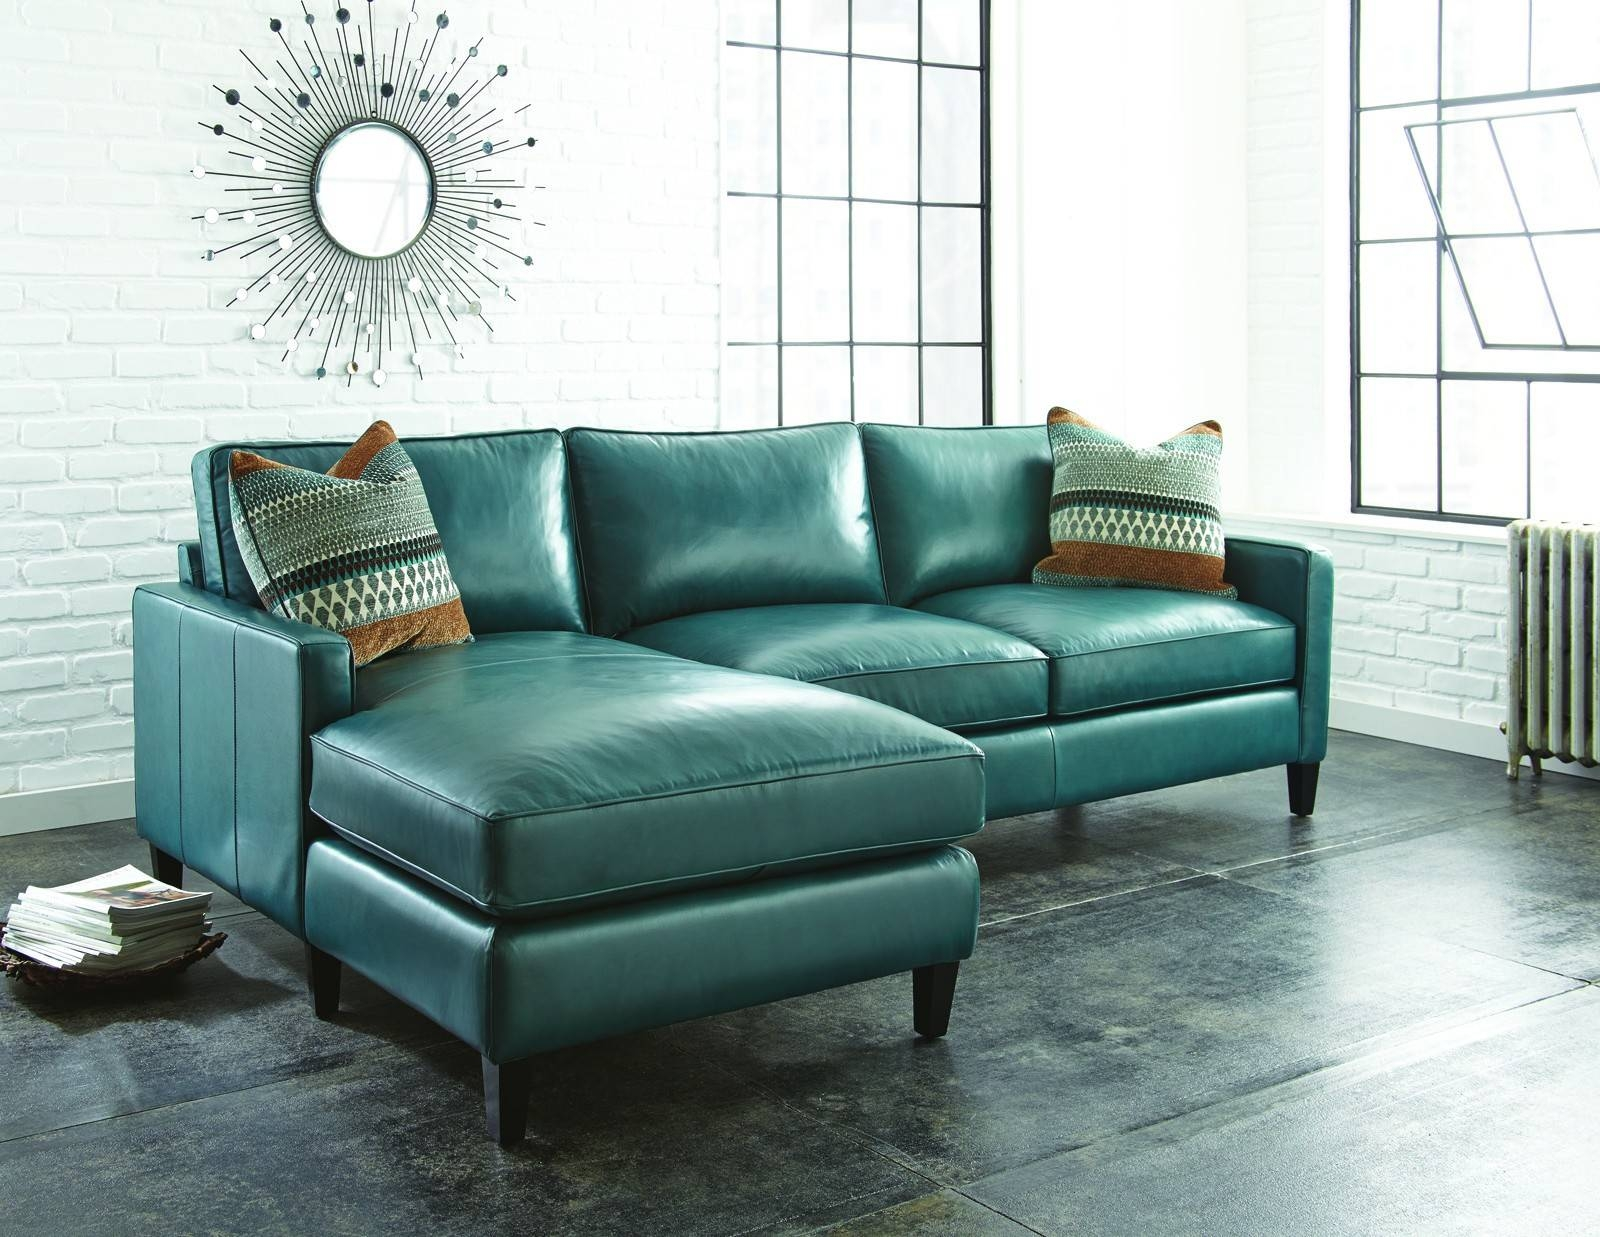 Bedroom: Comfortable Costco Leather Couches Make Cozy Living Room regarding The Brick Leather Sofa (Image 1 of 30)